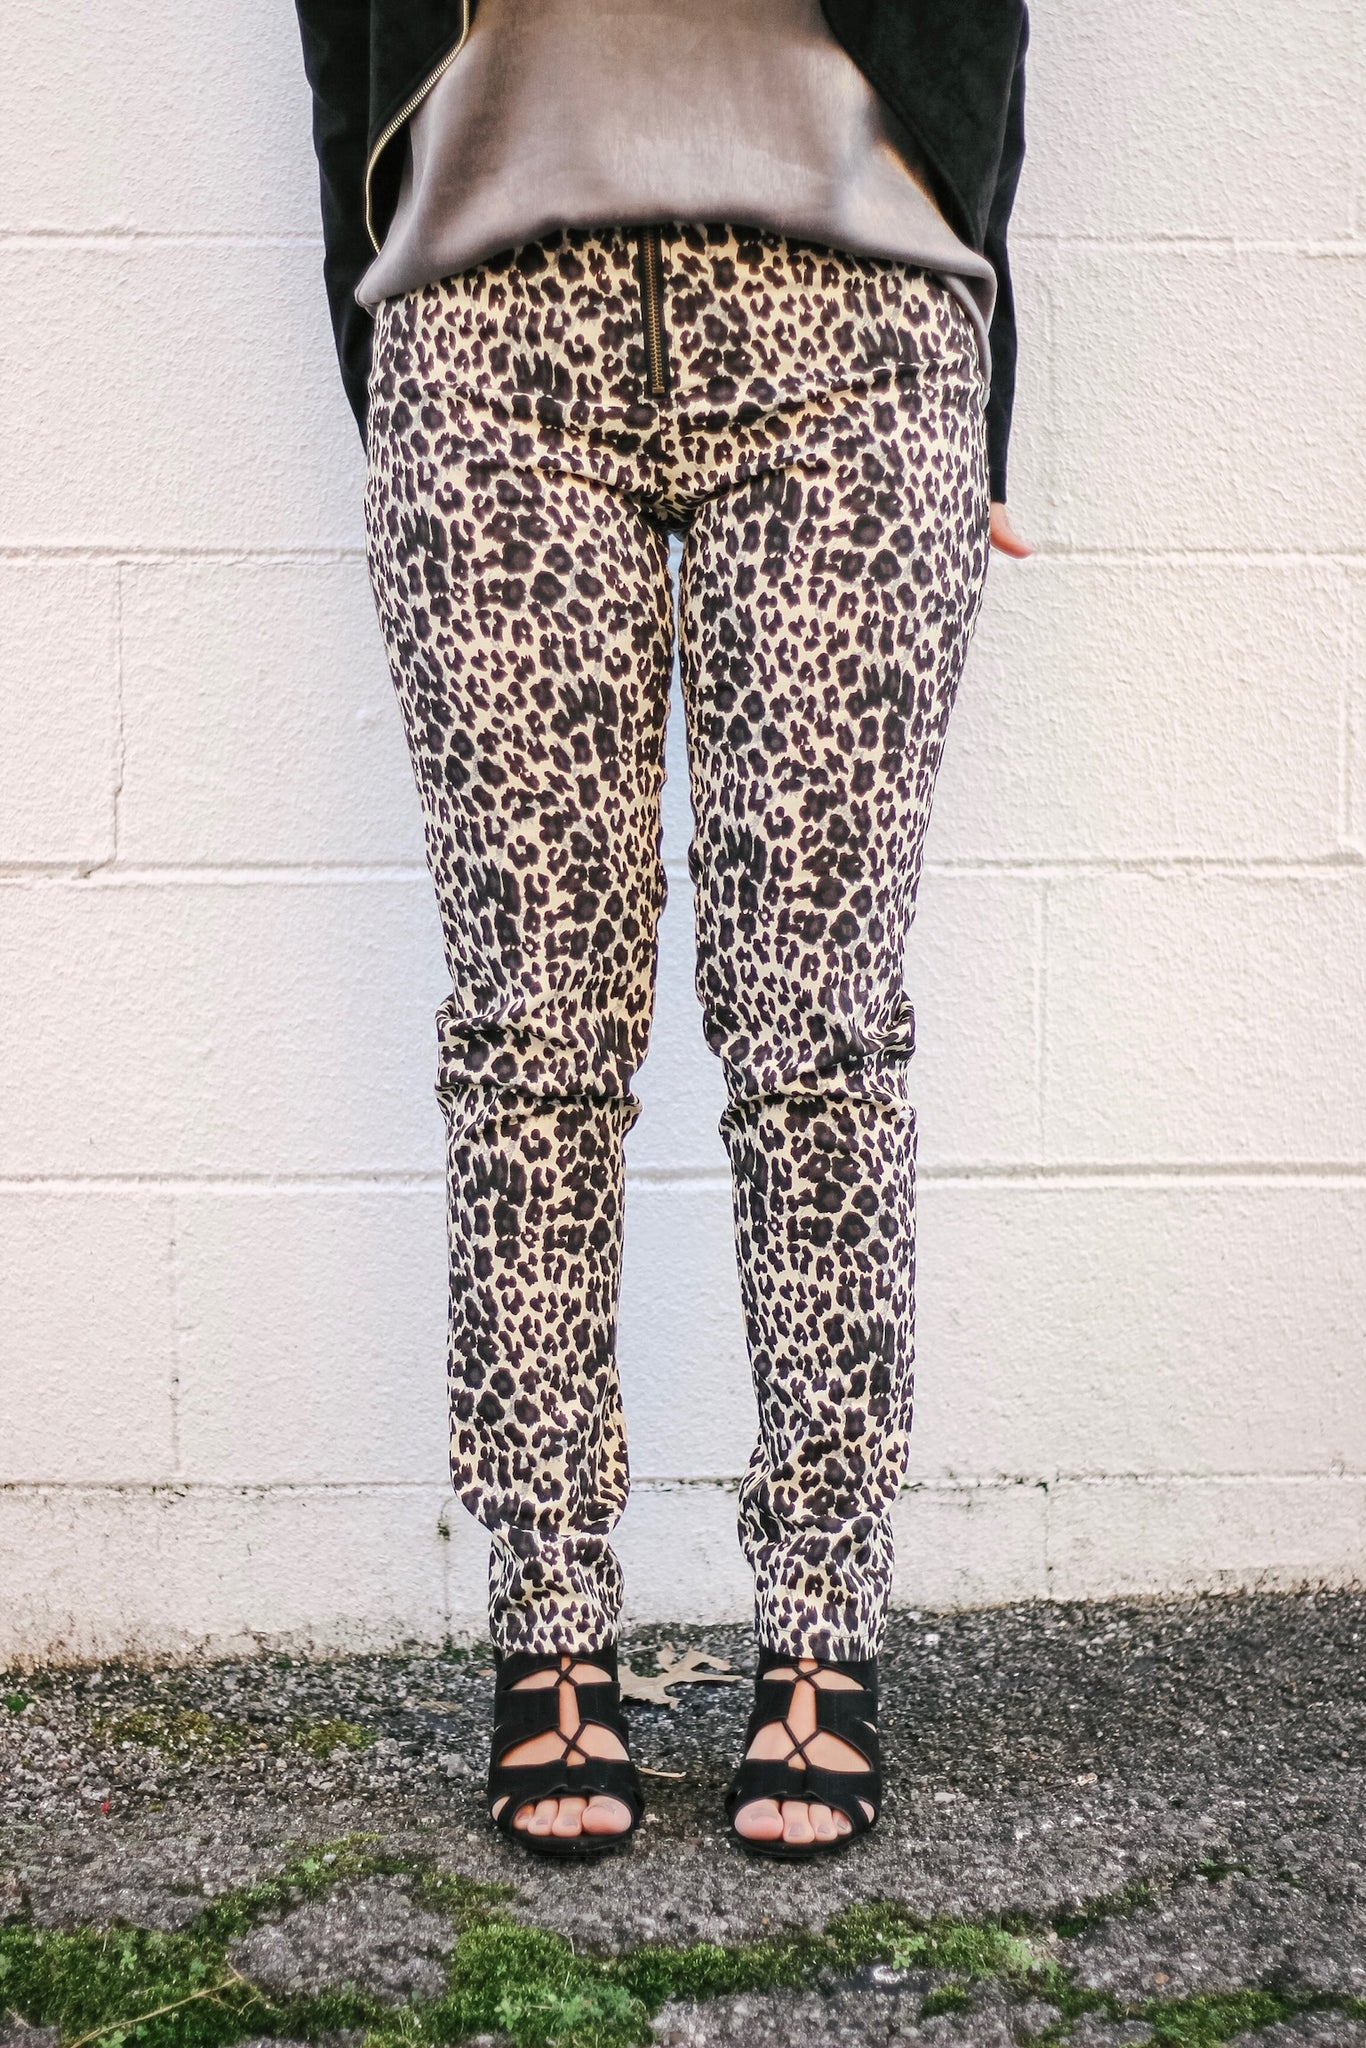 Legs Of Leopard Pants